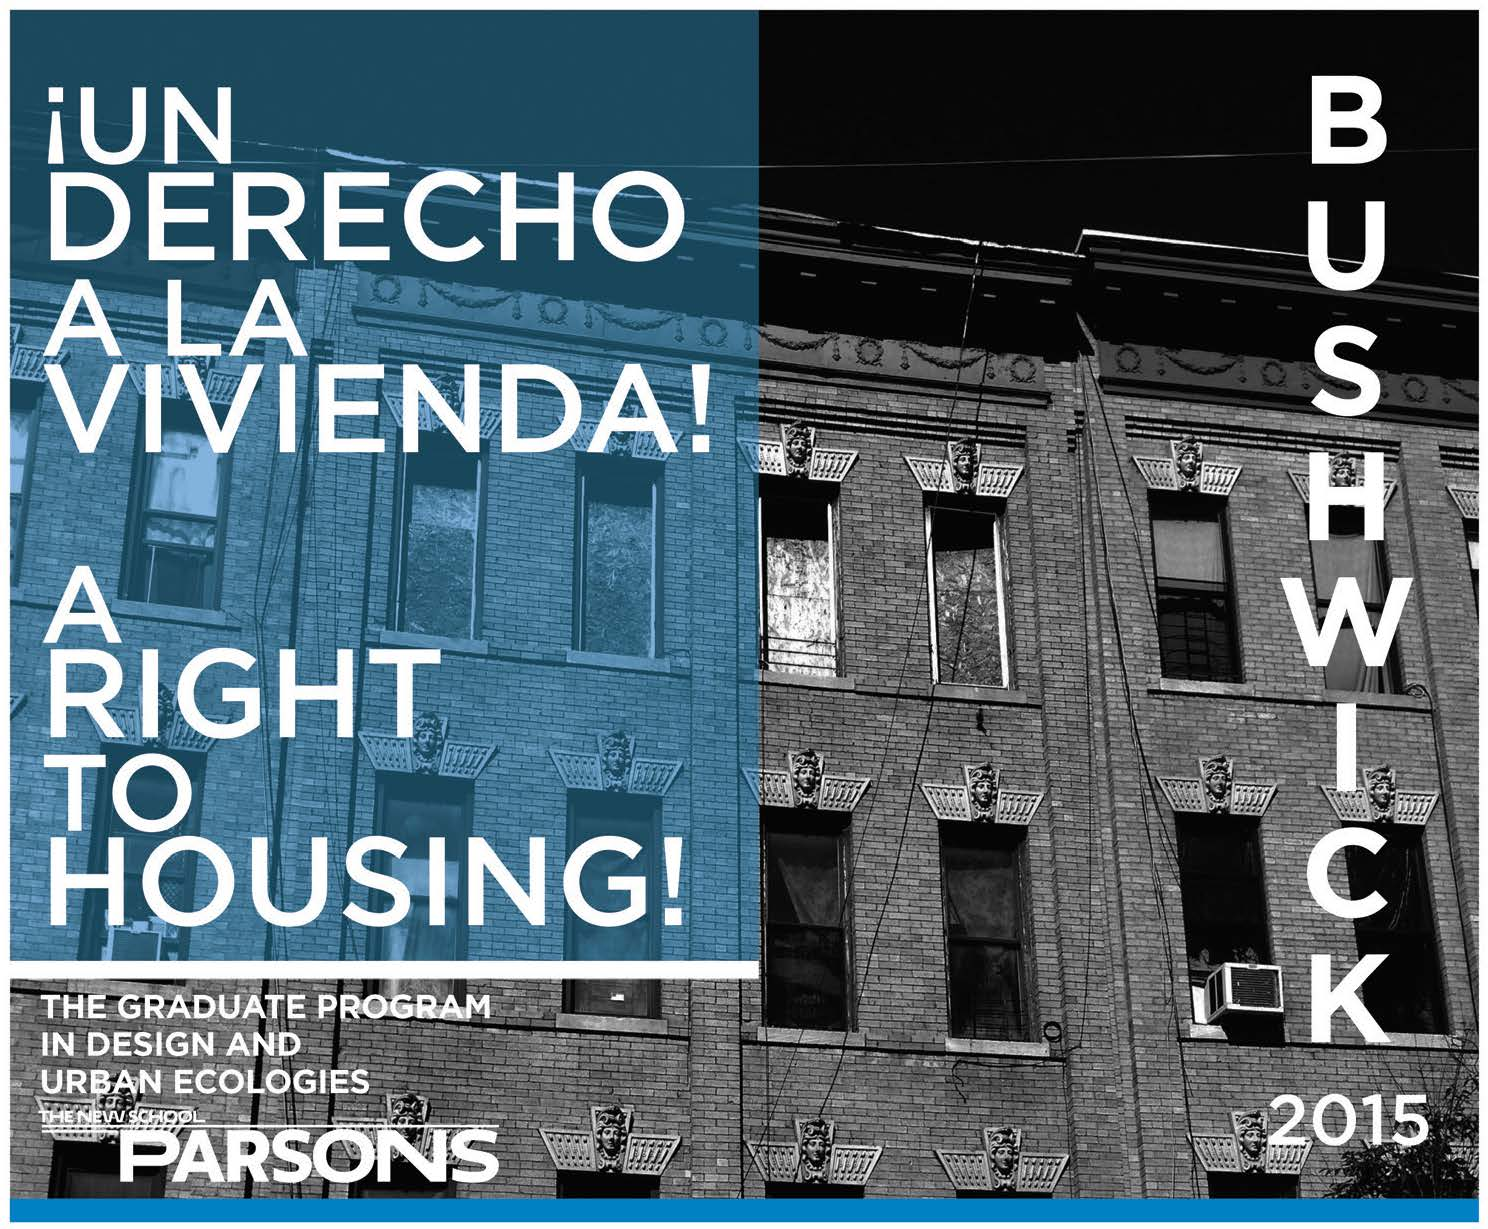 A Right to Housing!